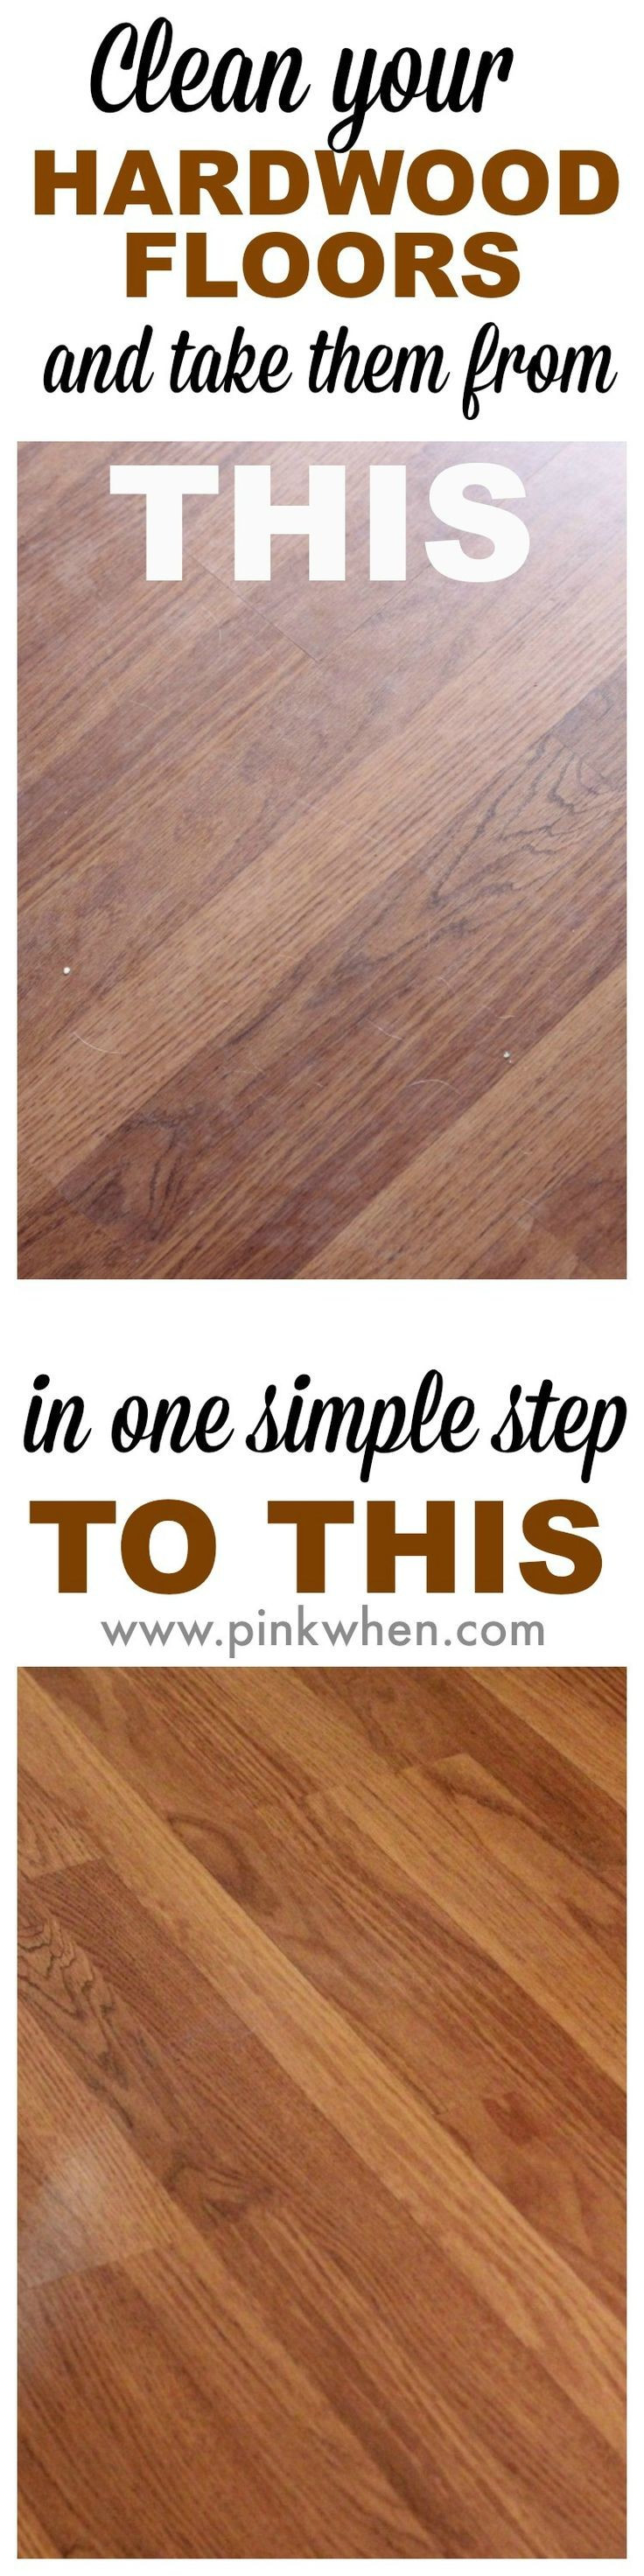 best unfinished hardwood flooring of 19 awesome steam clean hardwood floors images dizpos com inside 84 best hardwood floor care tips images on pinterest